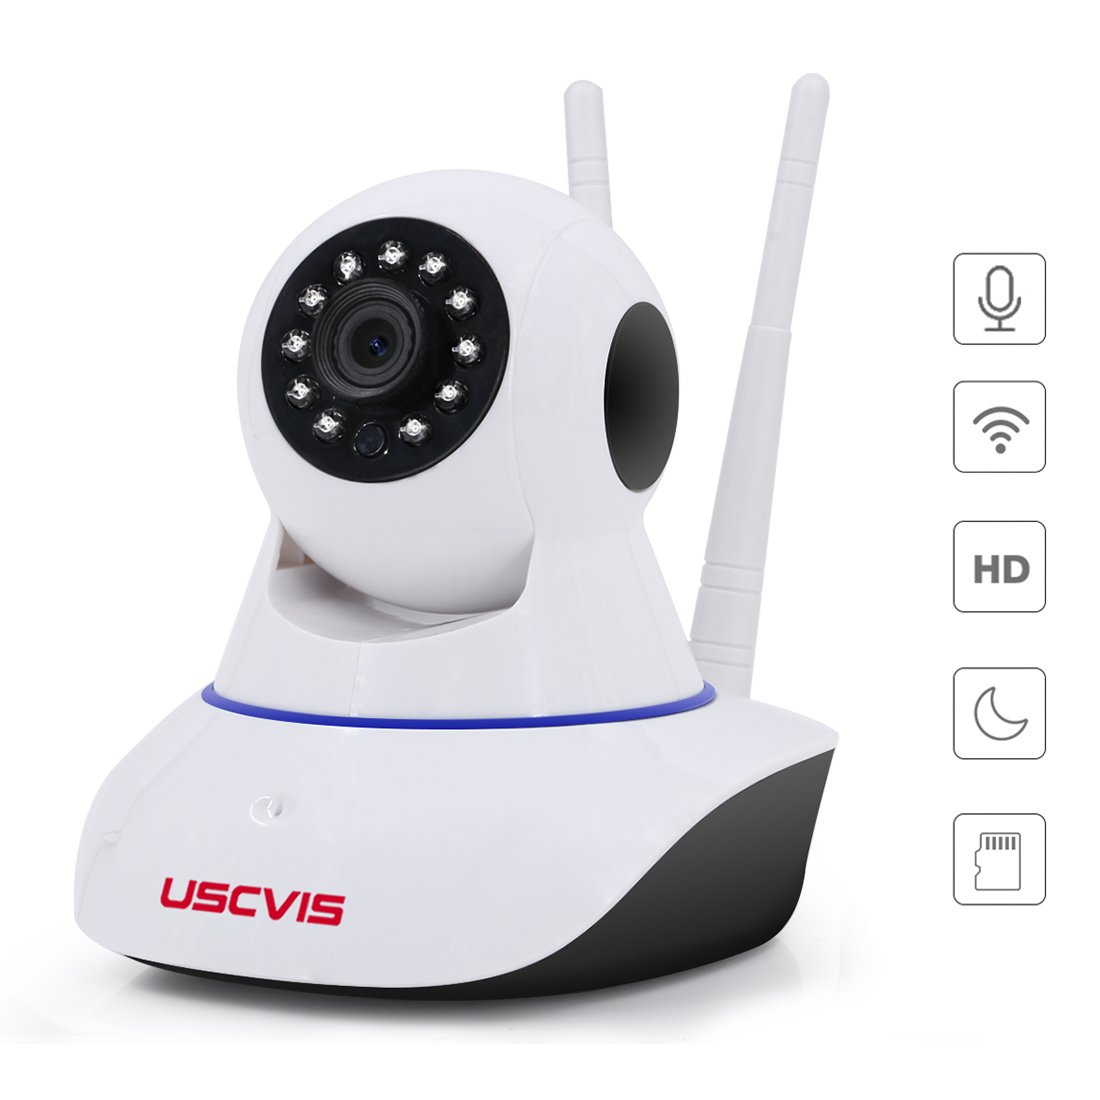 USCVIS Home Security Camera, 960p Wireless HD ip Camera with Two-way Audio, Night Vision, Motion Detection for Indoor Security, Pet Monitor